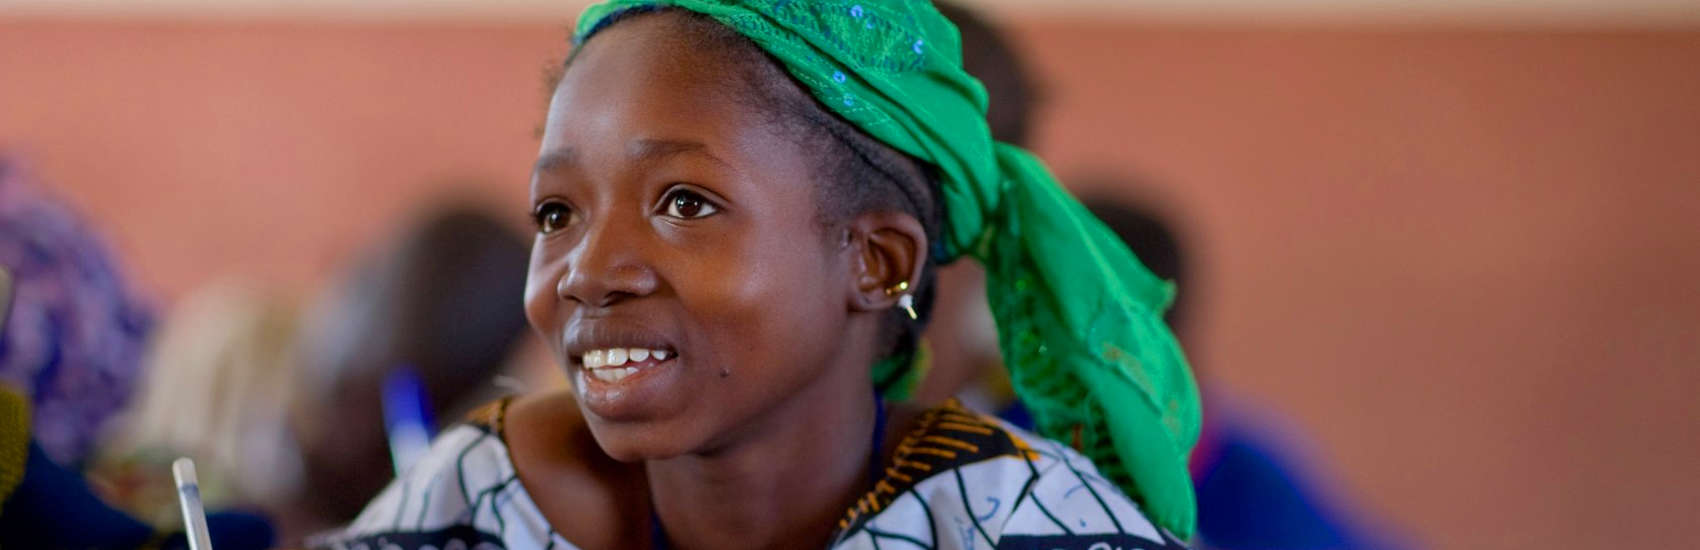 A young girl in a bright green head wrap sits at her school desk, ready to learn in Tabarako Town, Sikasso District, Mali. Photo credit: Joshua Roberts/Save the Children, January 2010.